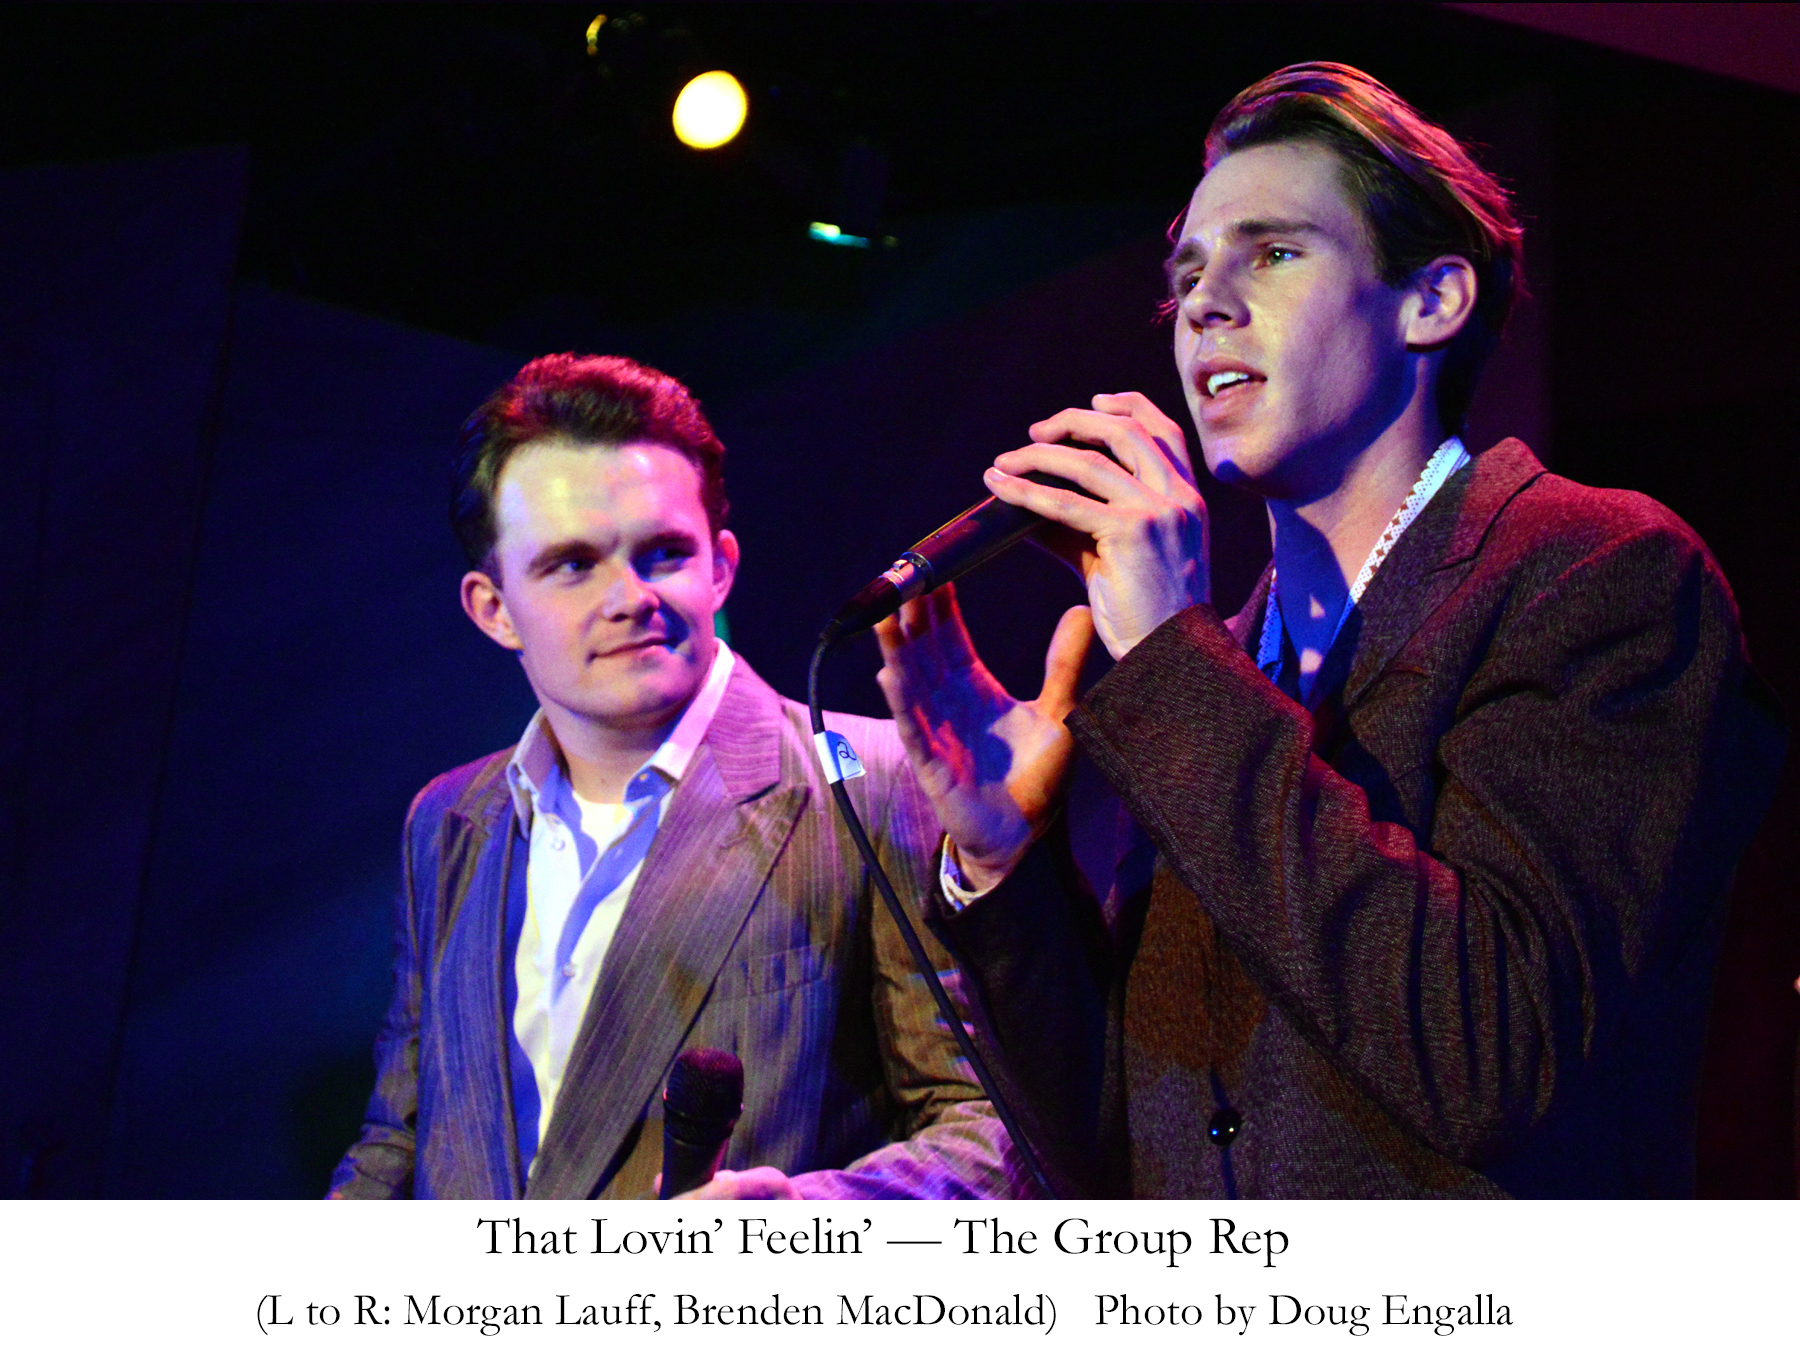 CLU Grad Now Playing Bobby Hatfield in New Righteous Brothers Musical